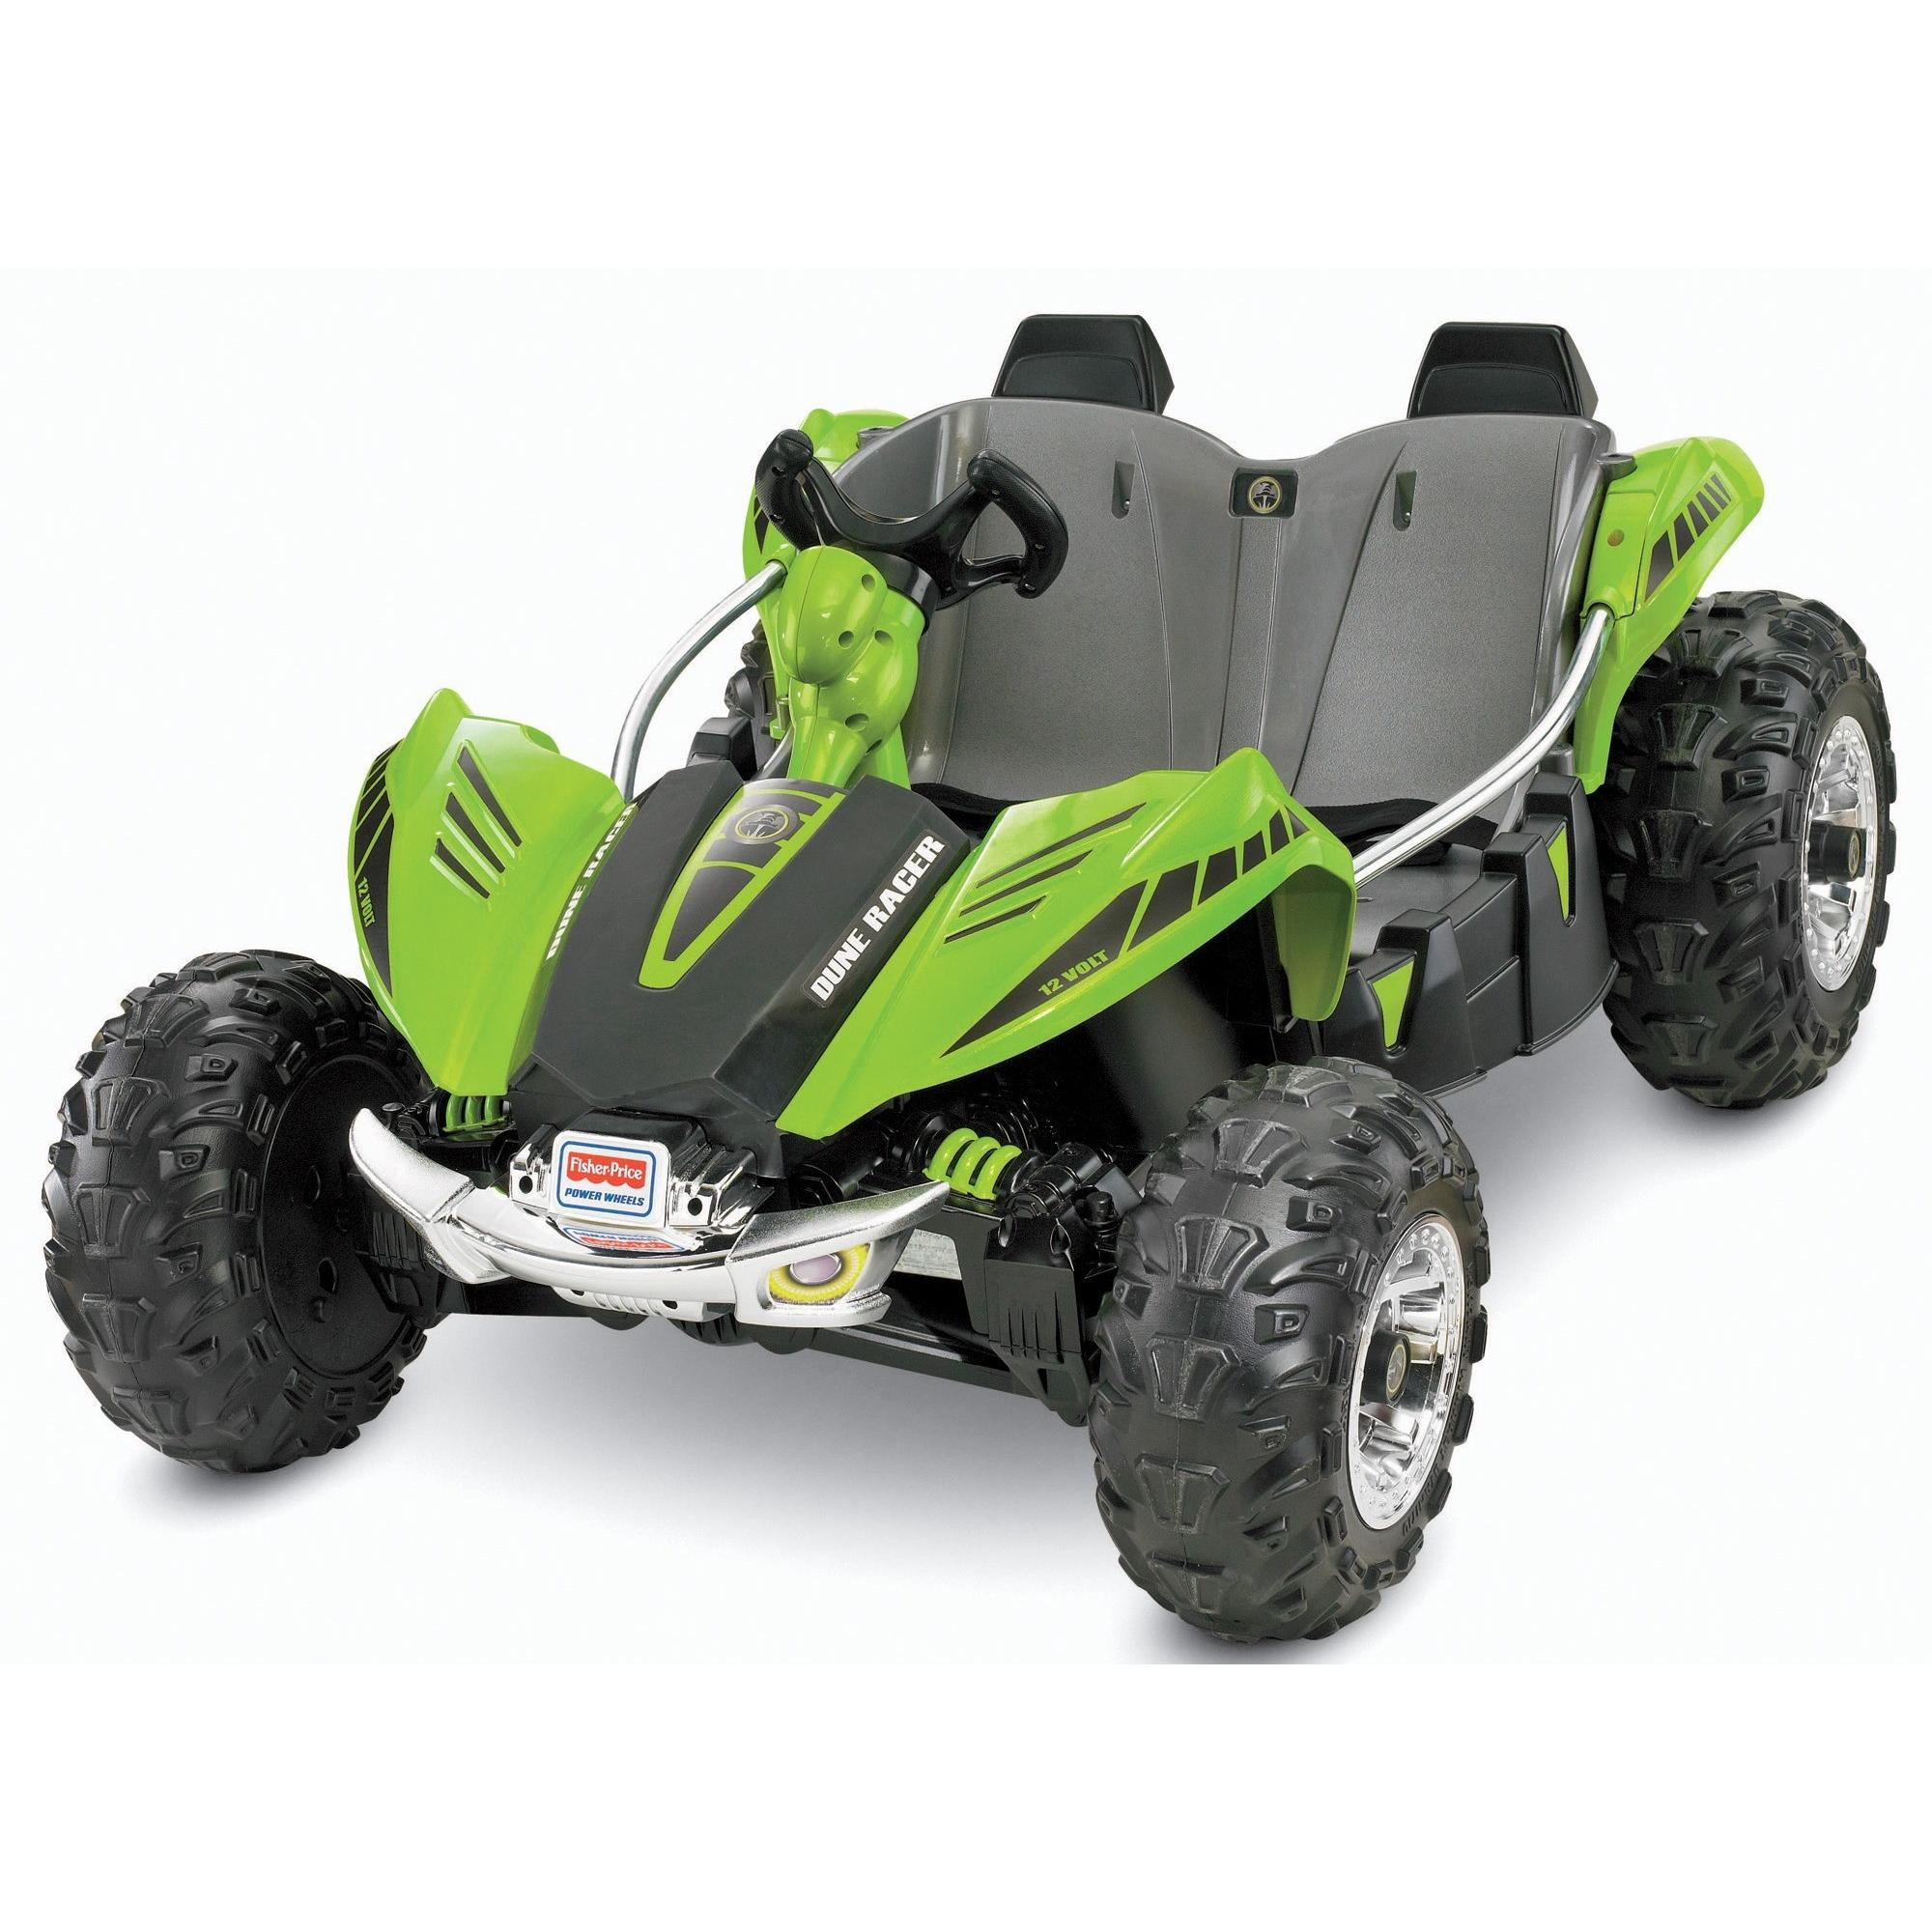 Power Wheels Dune Racer 12 Volt Battery Powered Ride On Ground Off The Leg Of Pull Form Batteries In Series